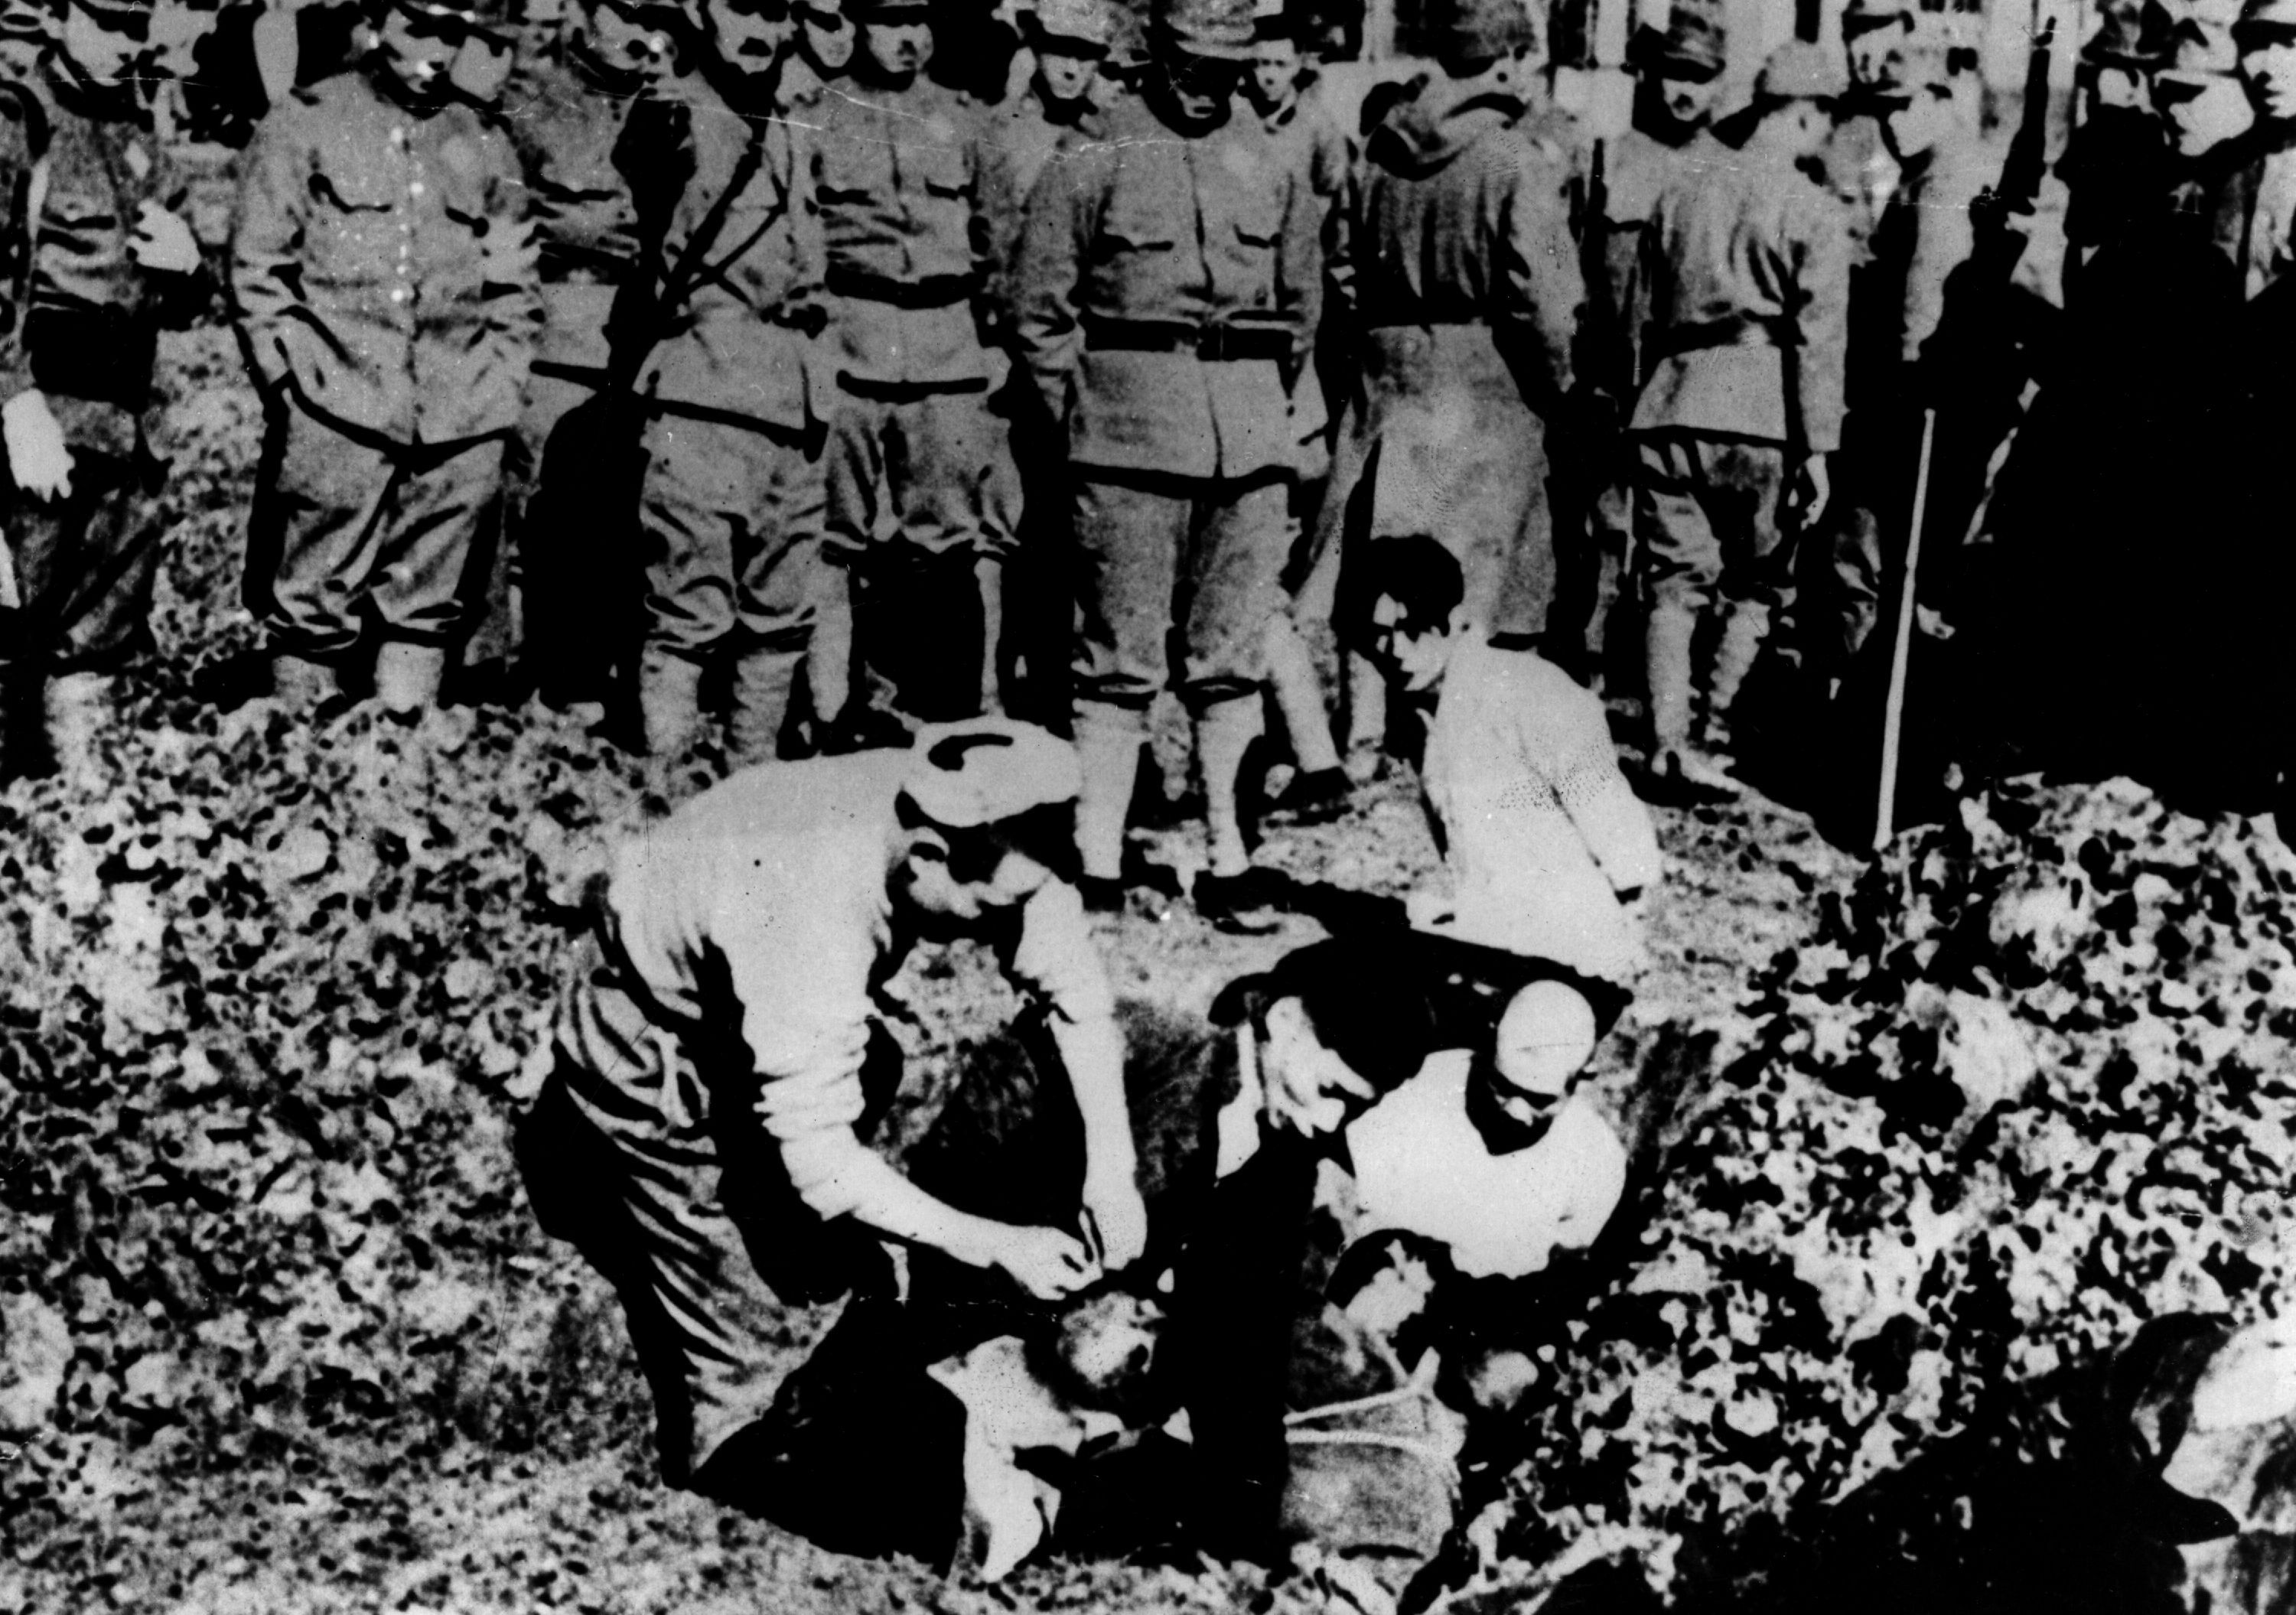 holocaust in the chinese city of nanking in 1937 In december of 1937, the japanese imperial army marched into china's capital city of nanking and proceeded to murder 300,000 out of 600,000 civilians and soldiers in the city.